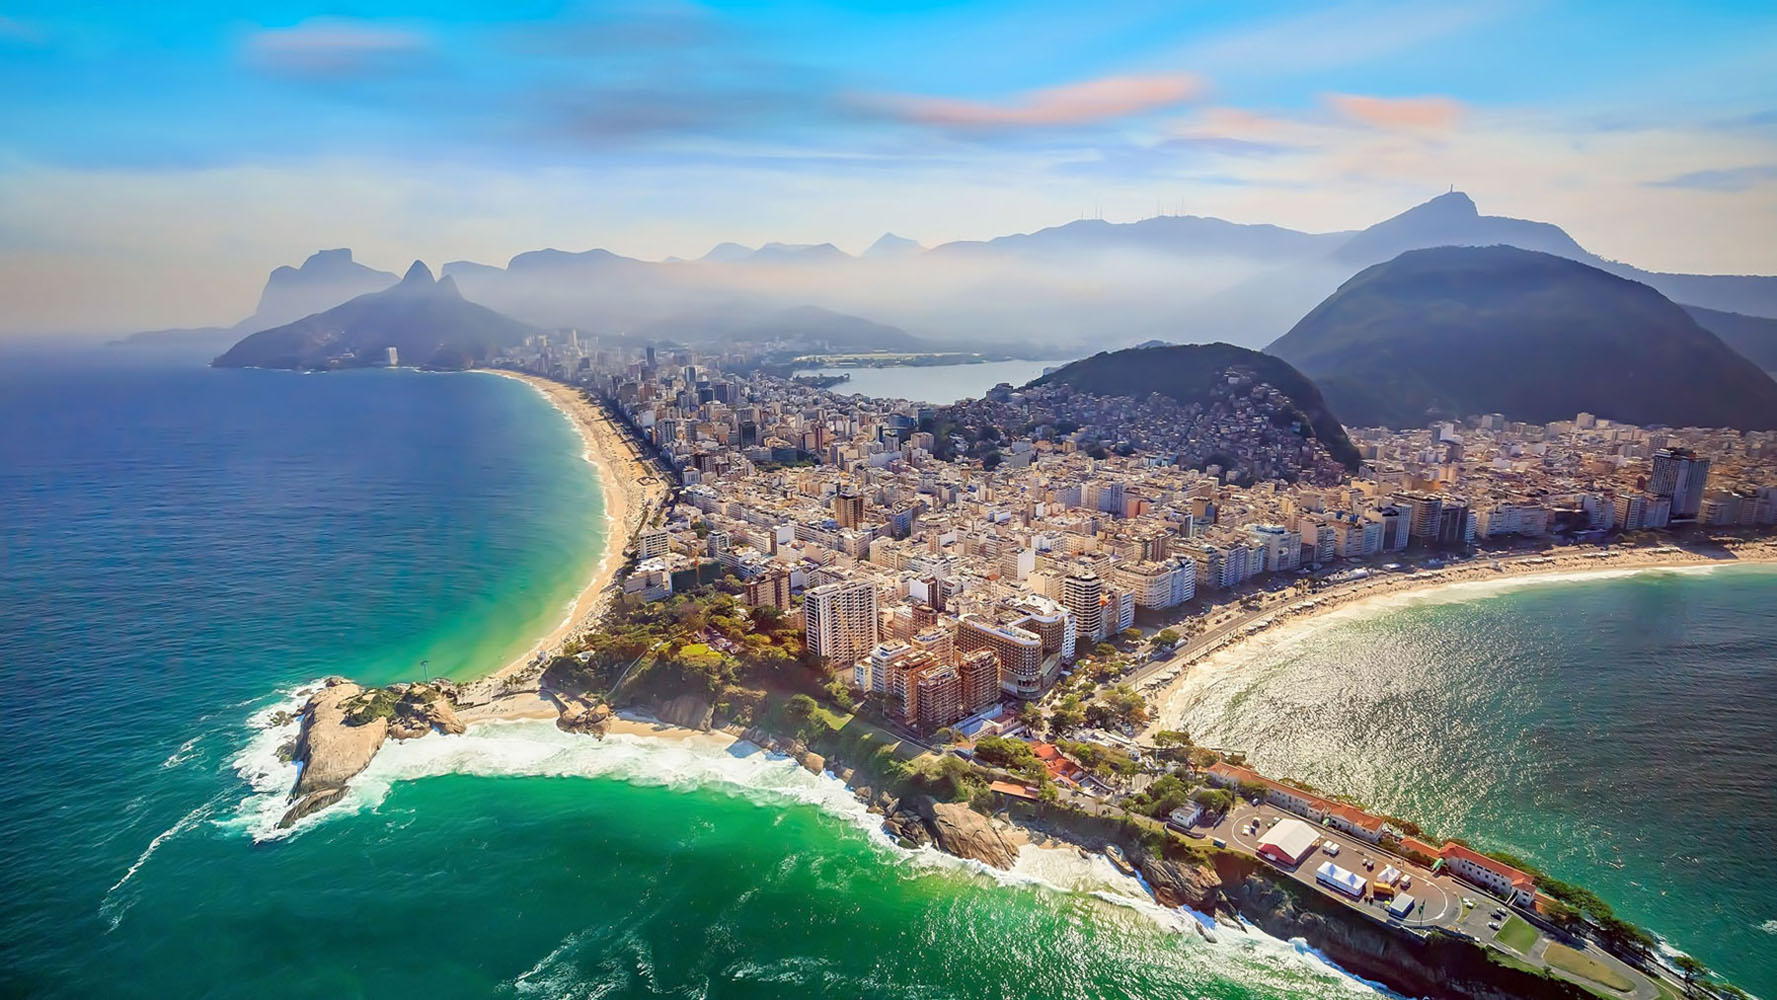 Aerial view of Copacabana Beach and Ipanema beach in Rio